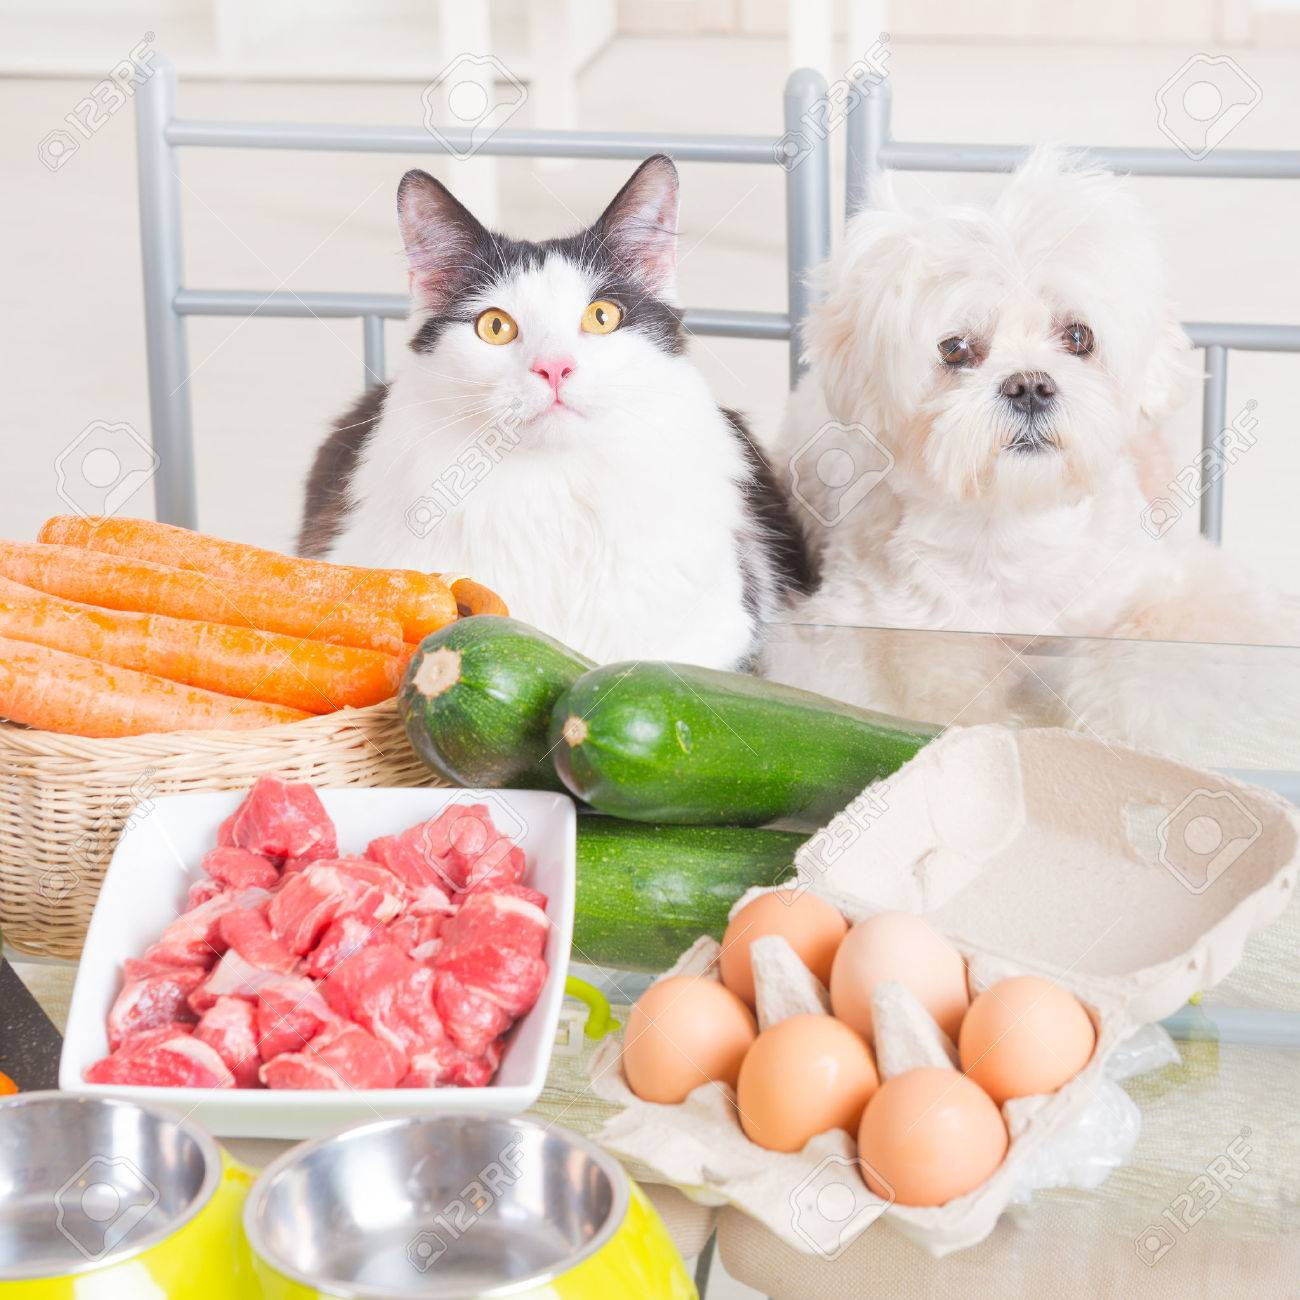 Preparing Natural Natural, Organic Food For Pets At Home Stock Photo    54601859